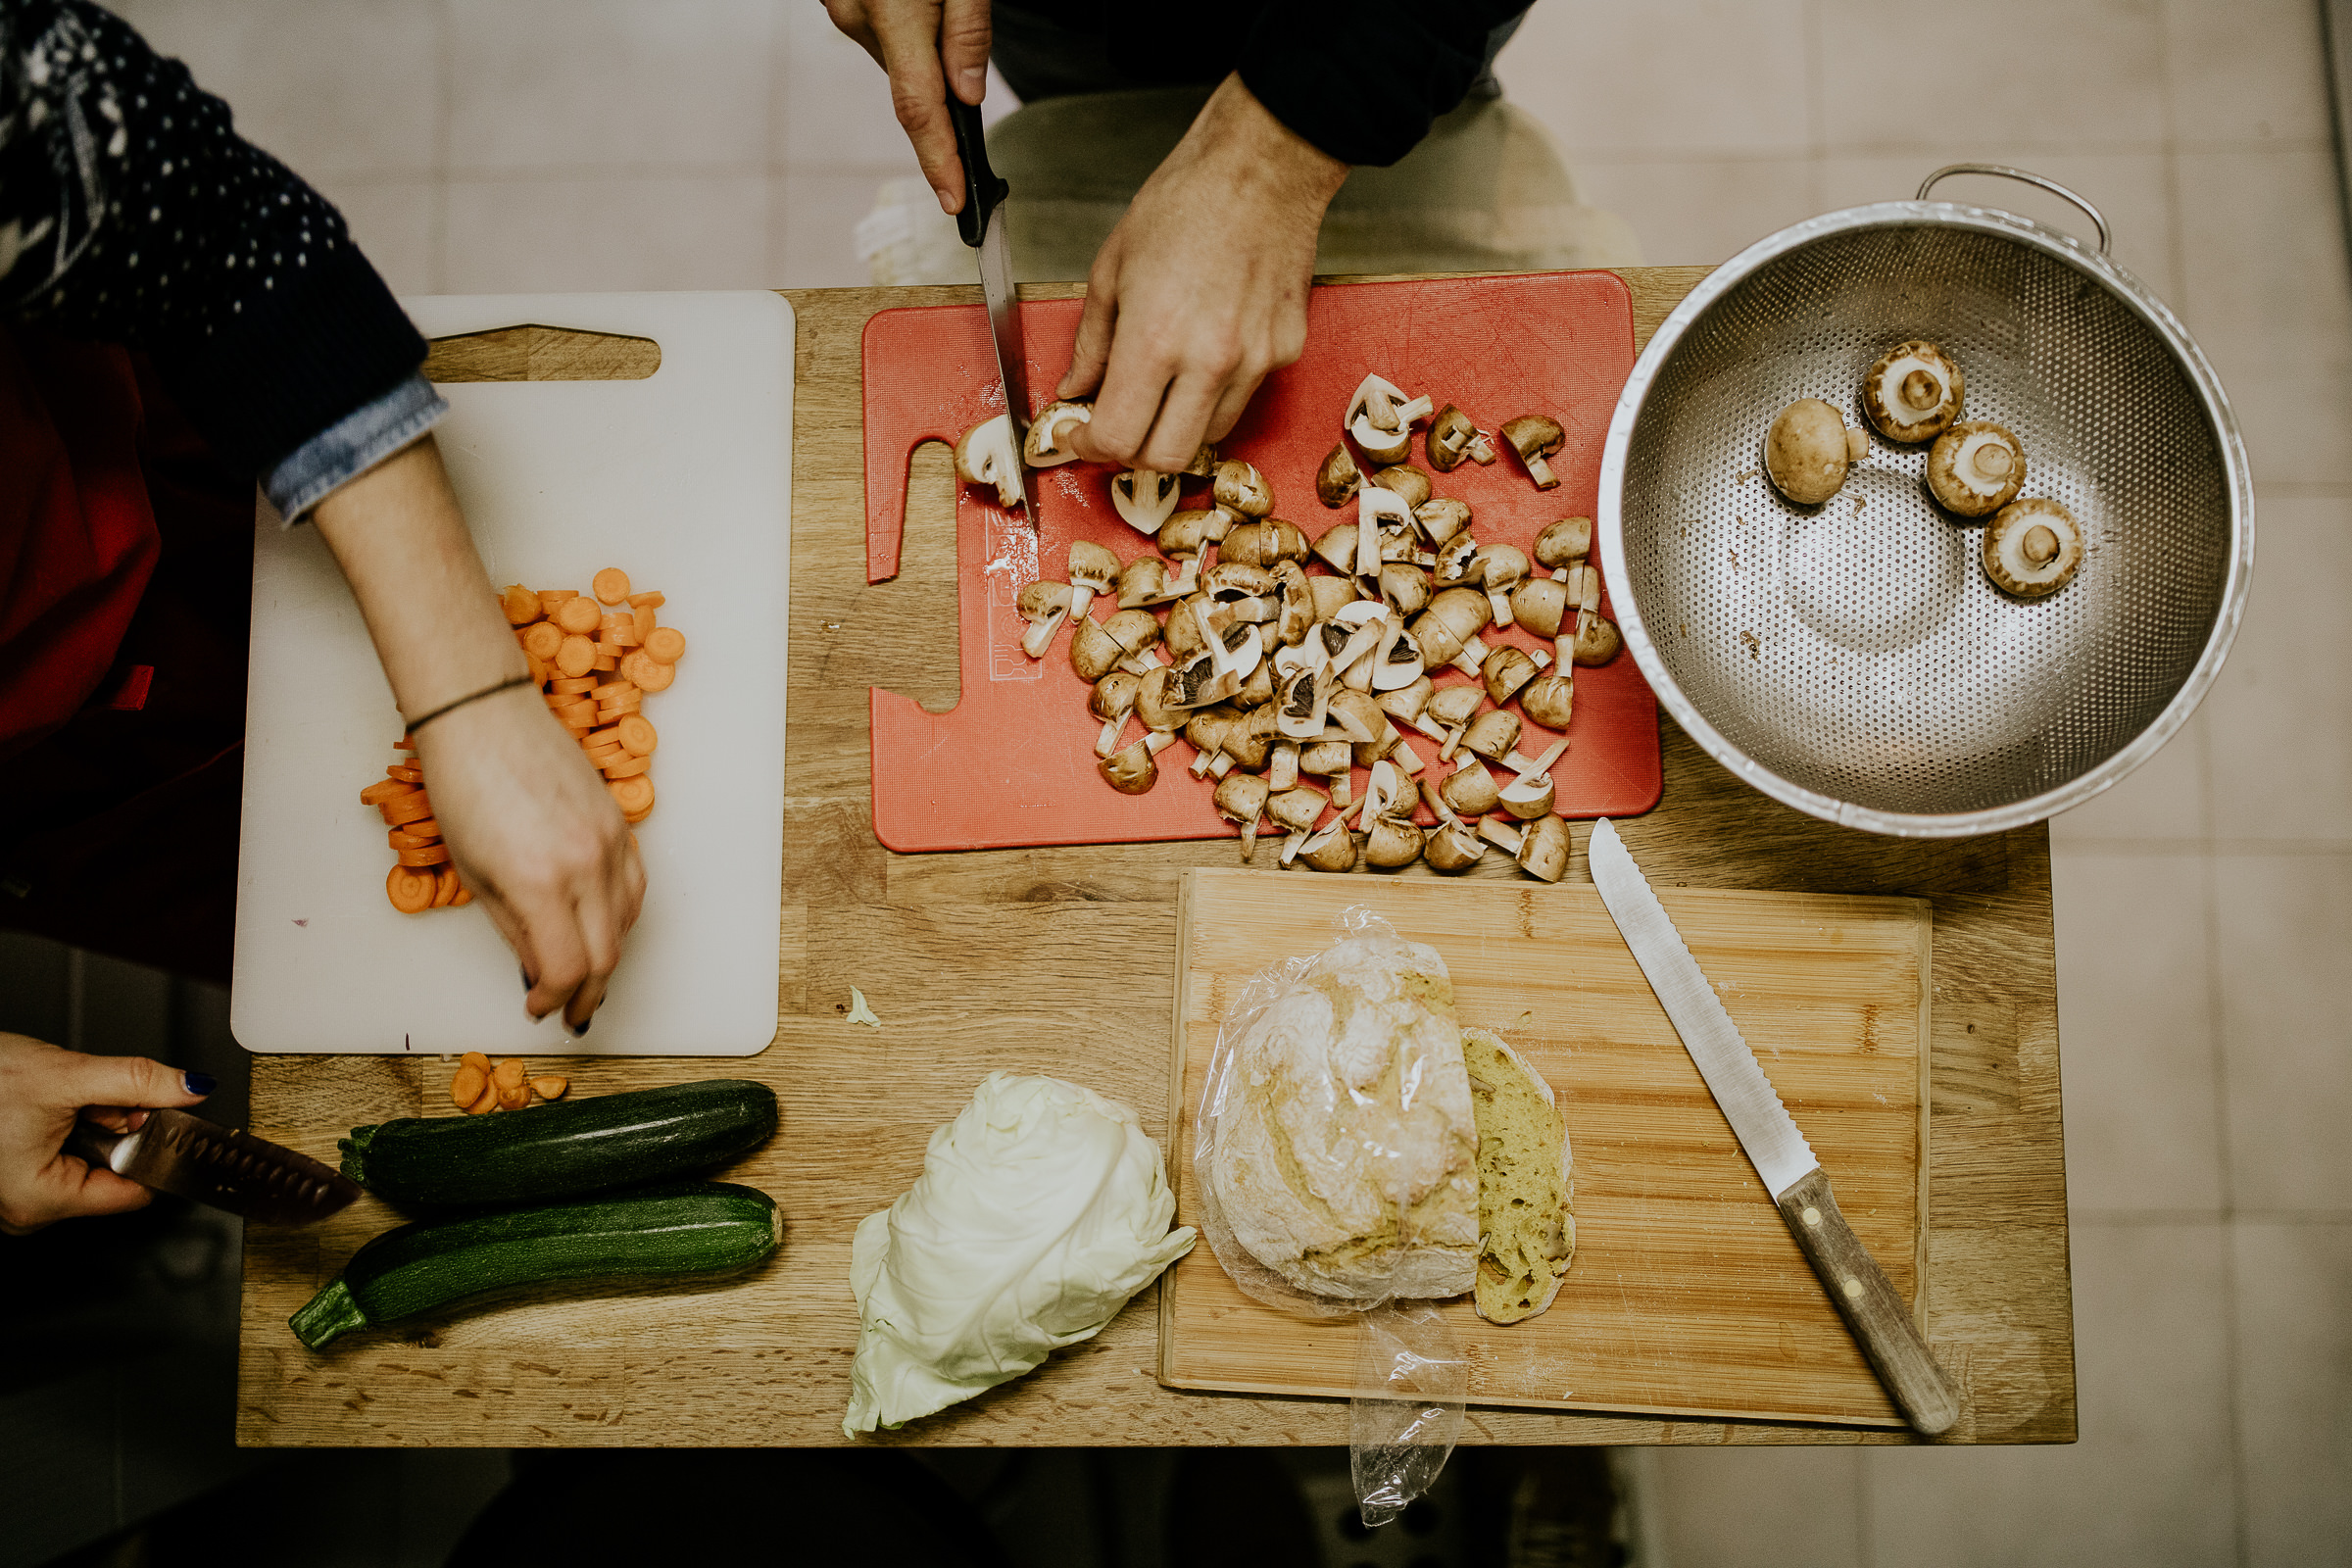 cutting mushrooms and preparing the dinner at home